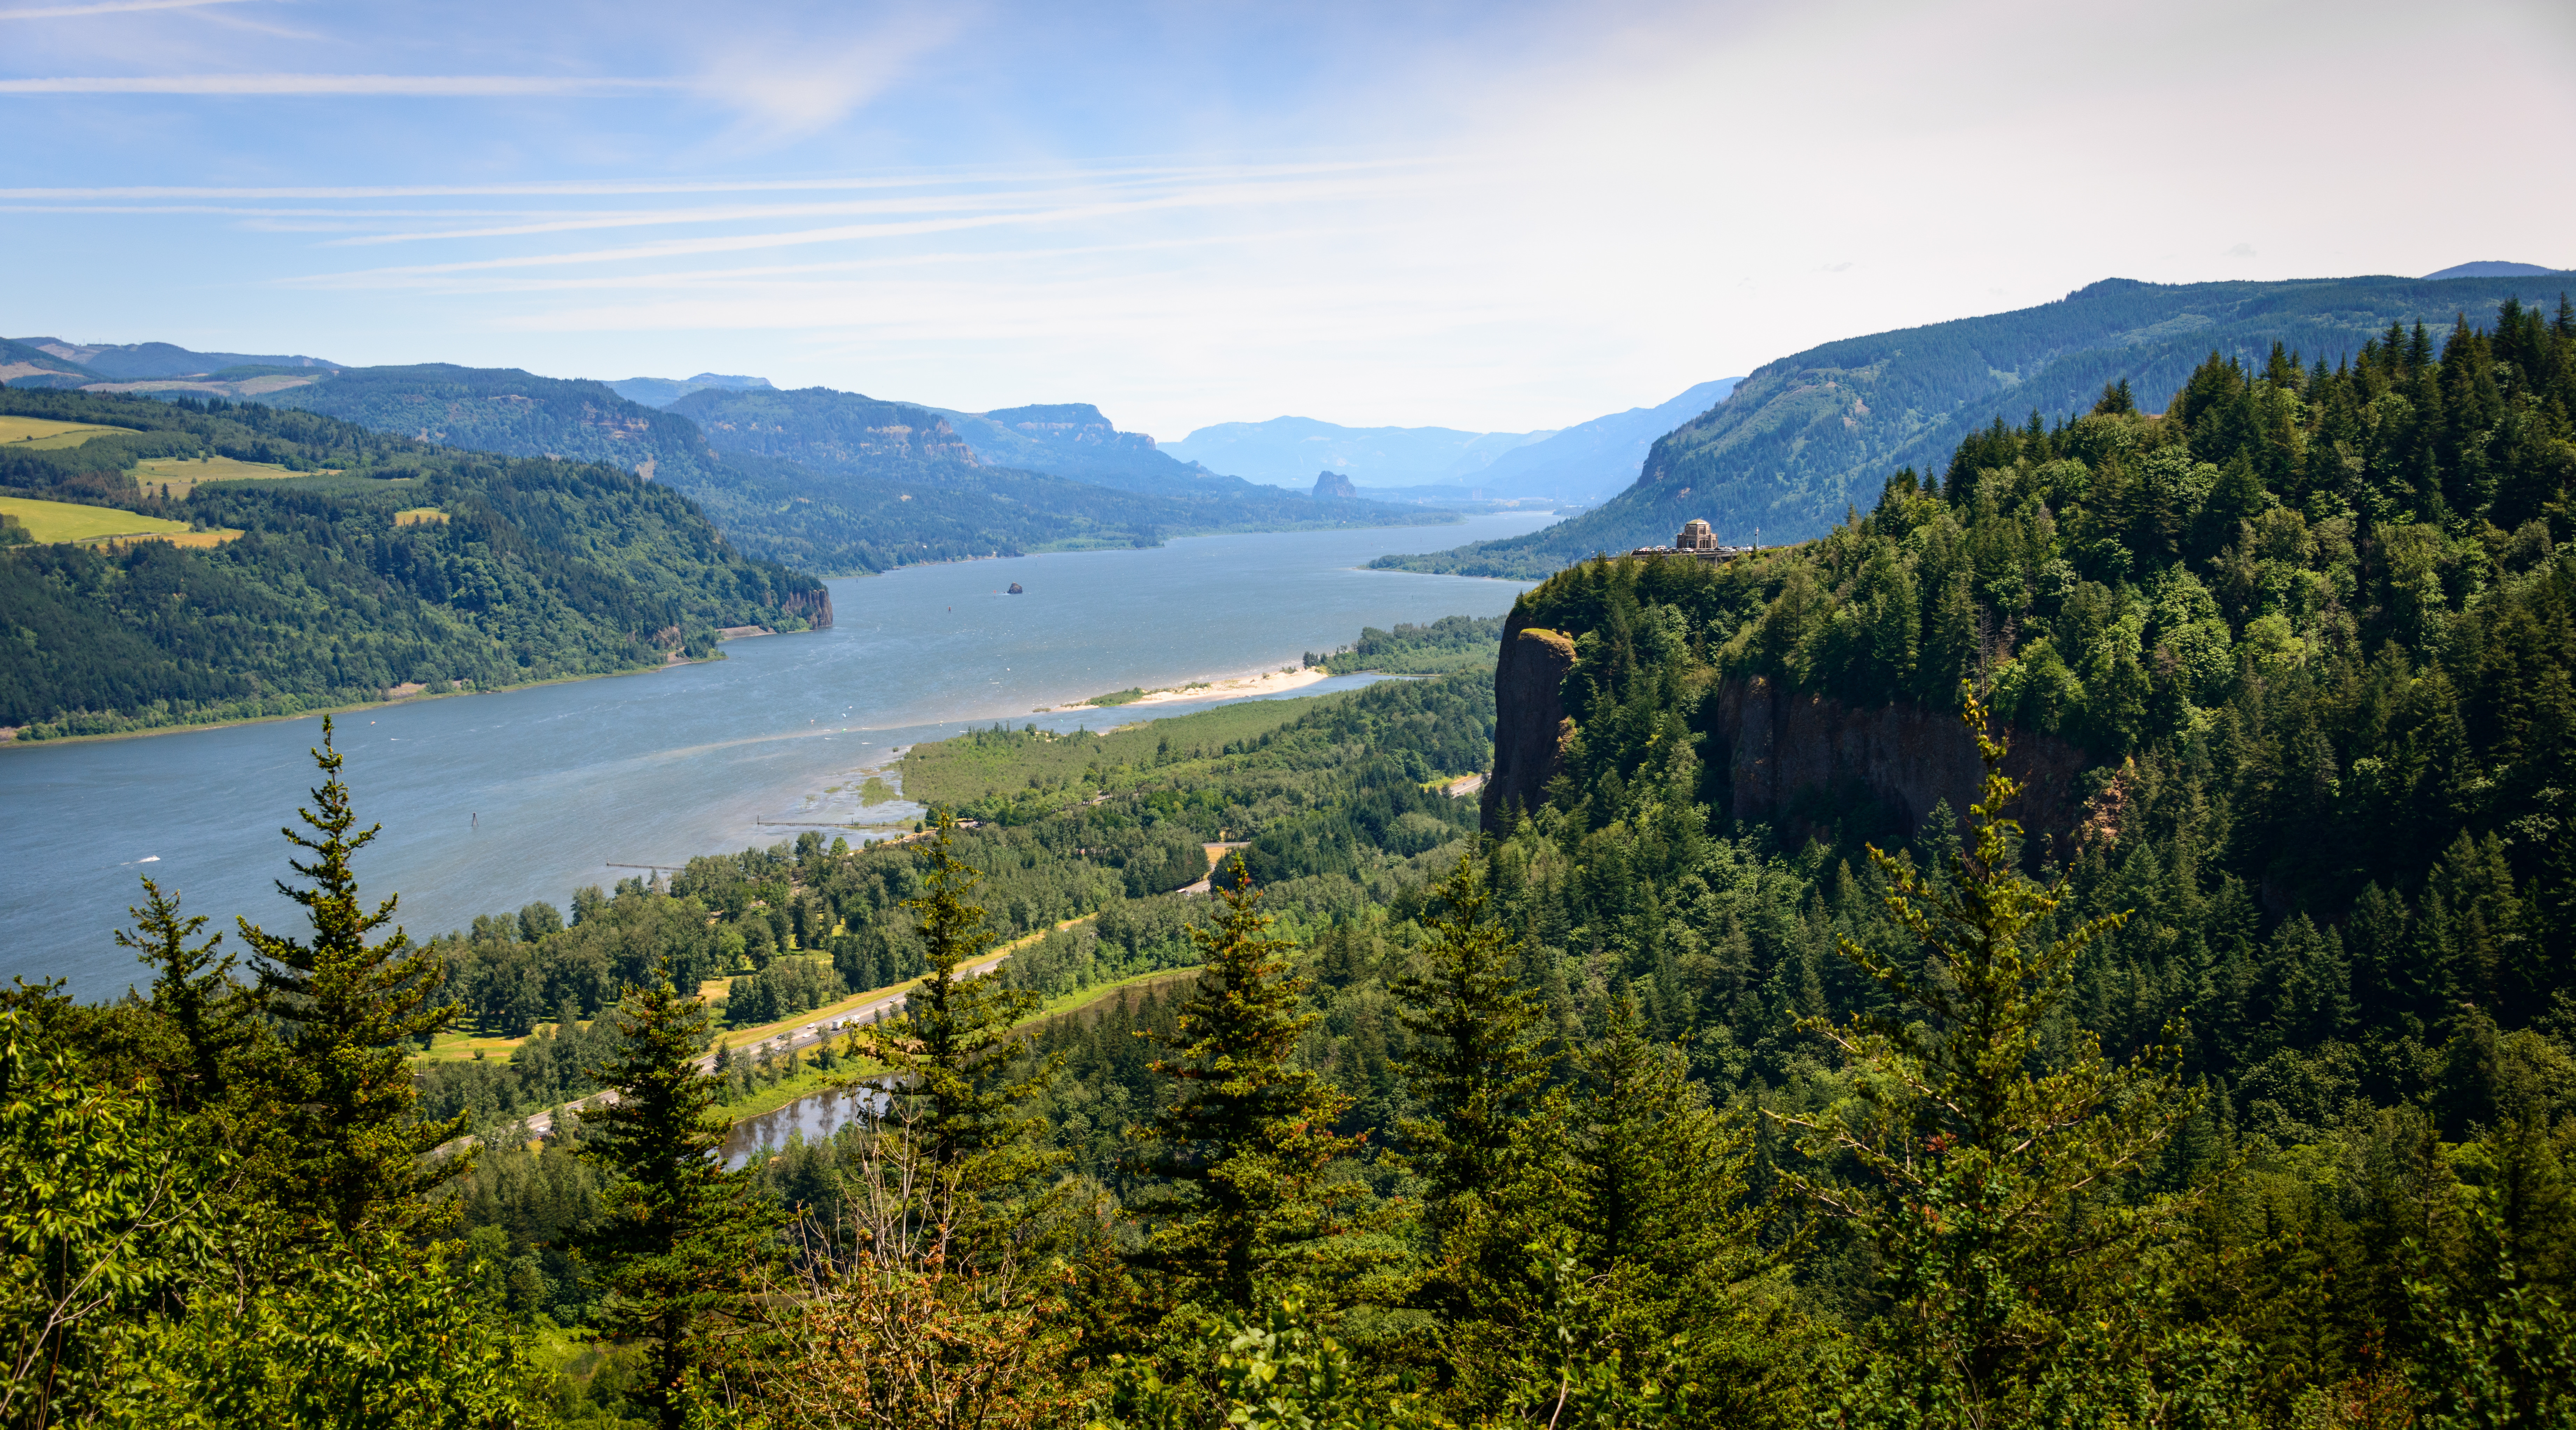 the-columbia-gorge-valley.jpg?mtime=20200129110538#asset:107819